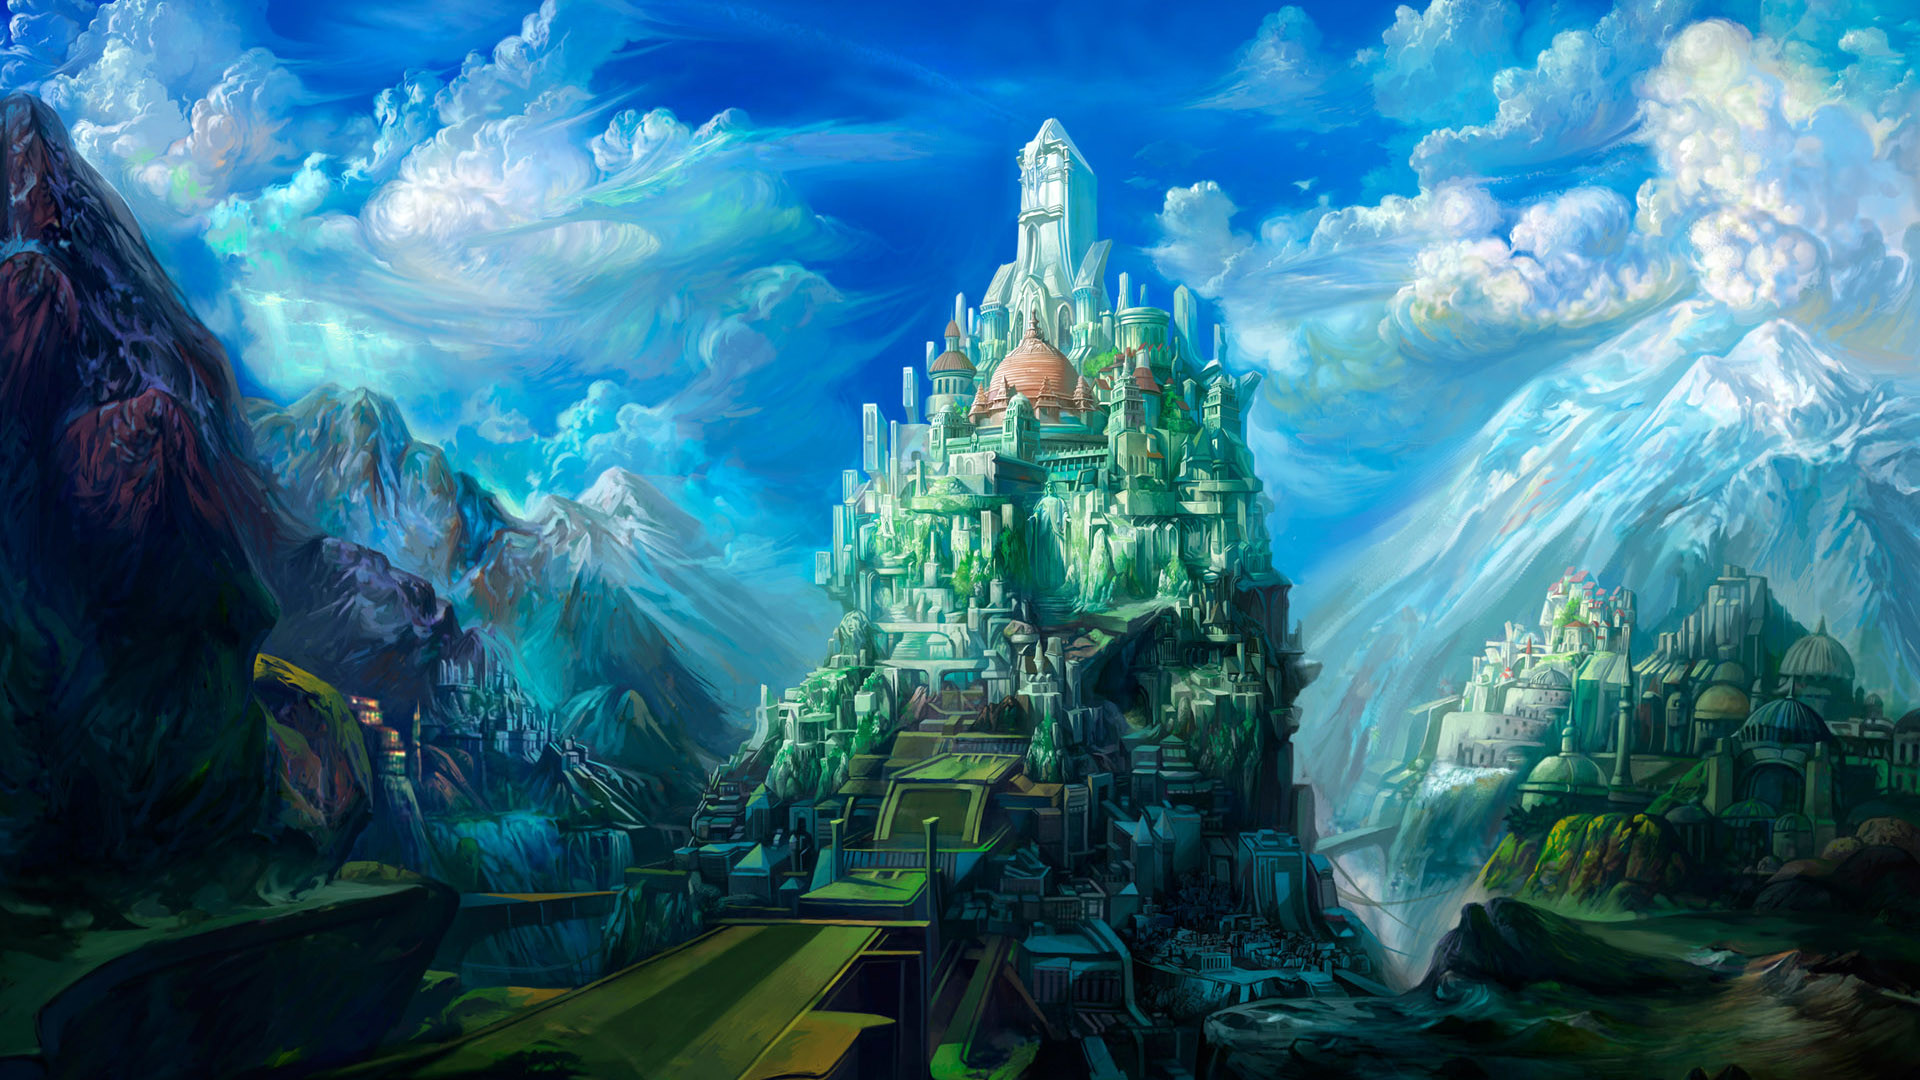 Game HD Wallpapers, Video Games Wallpapers, Games The World Games .